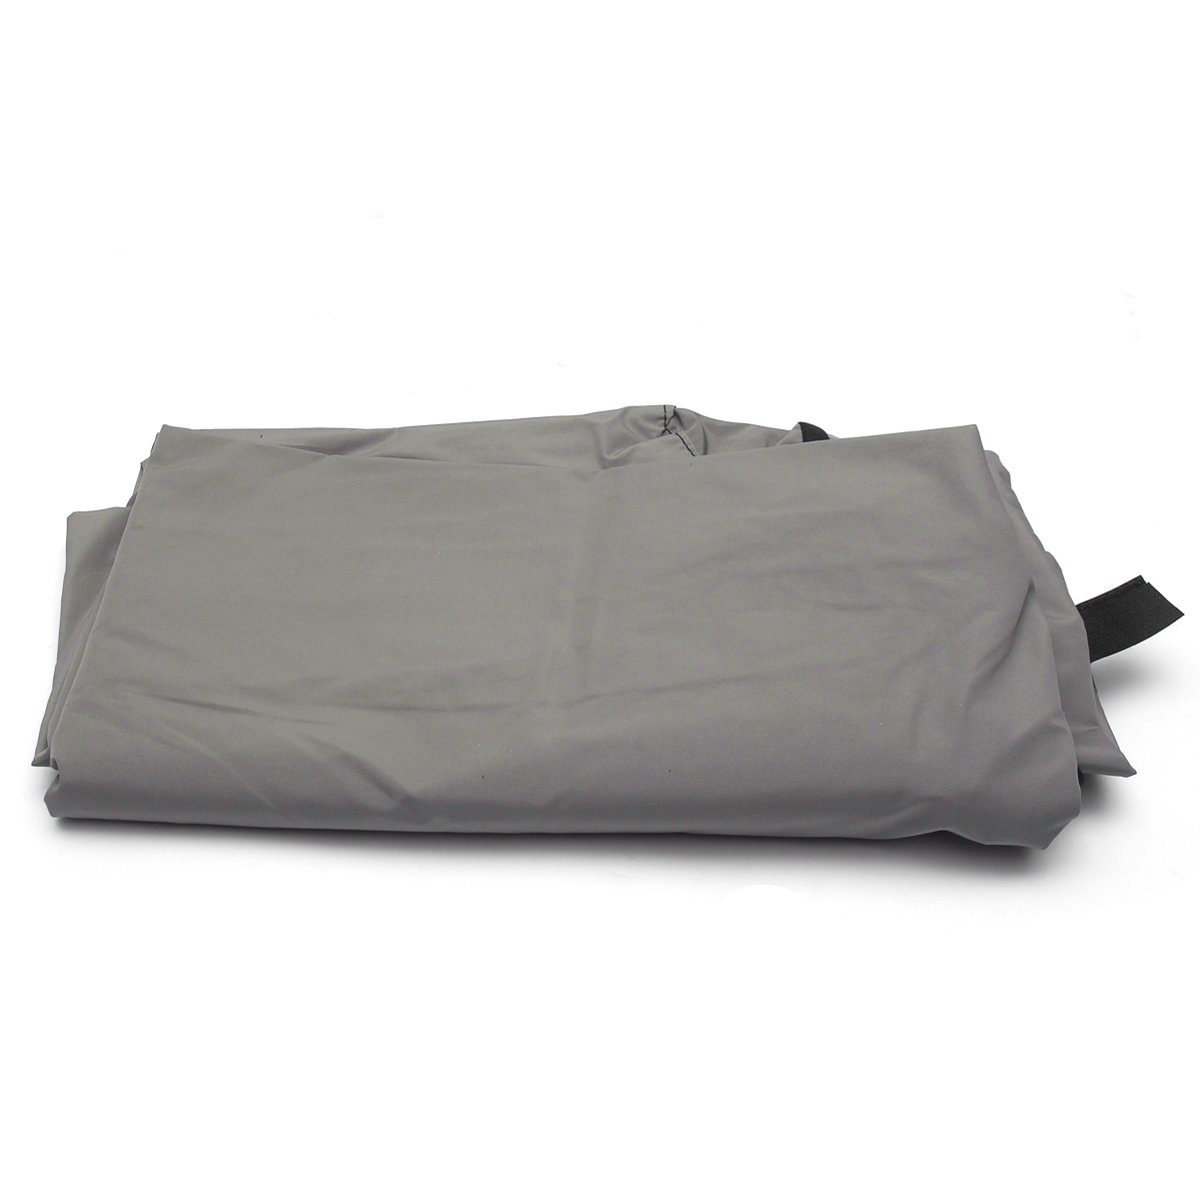 Essort Swing Canopy, 2 to 3 Seaters Waterproof Anti-UV Swing Top Cover Canopy Replacement for Outdoor Porch Patio Swing and Garden Hammock, 75'' × 52'' × 5.9'' Grey by ESSORT (Image #4)